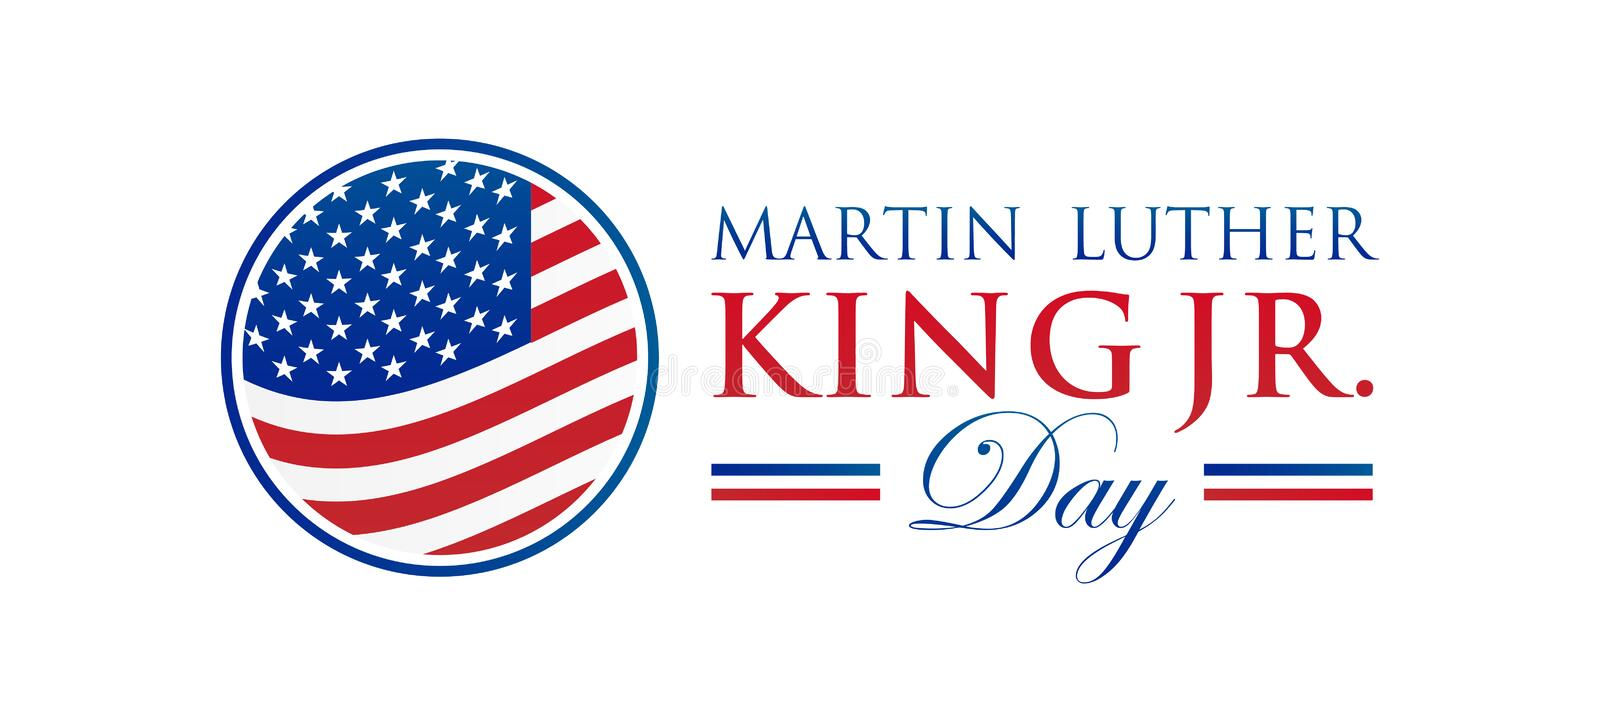 Martin Luther King Jr. Day Vector Illustration stock illustration